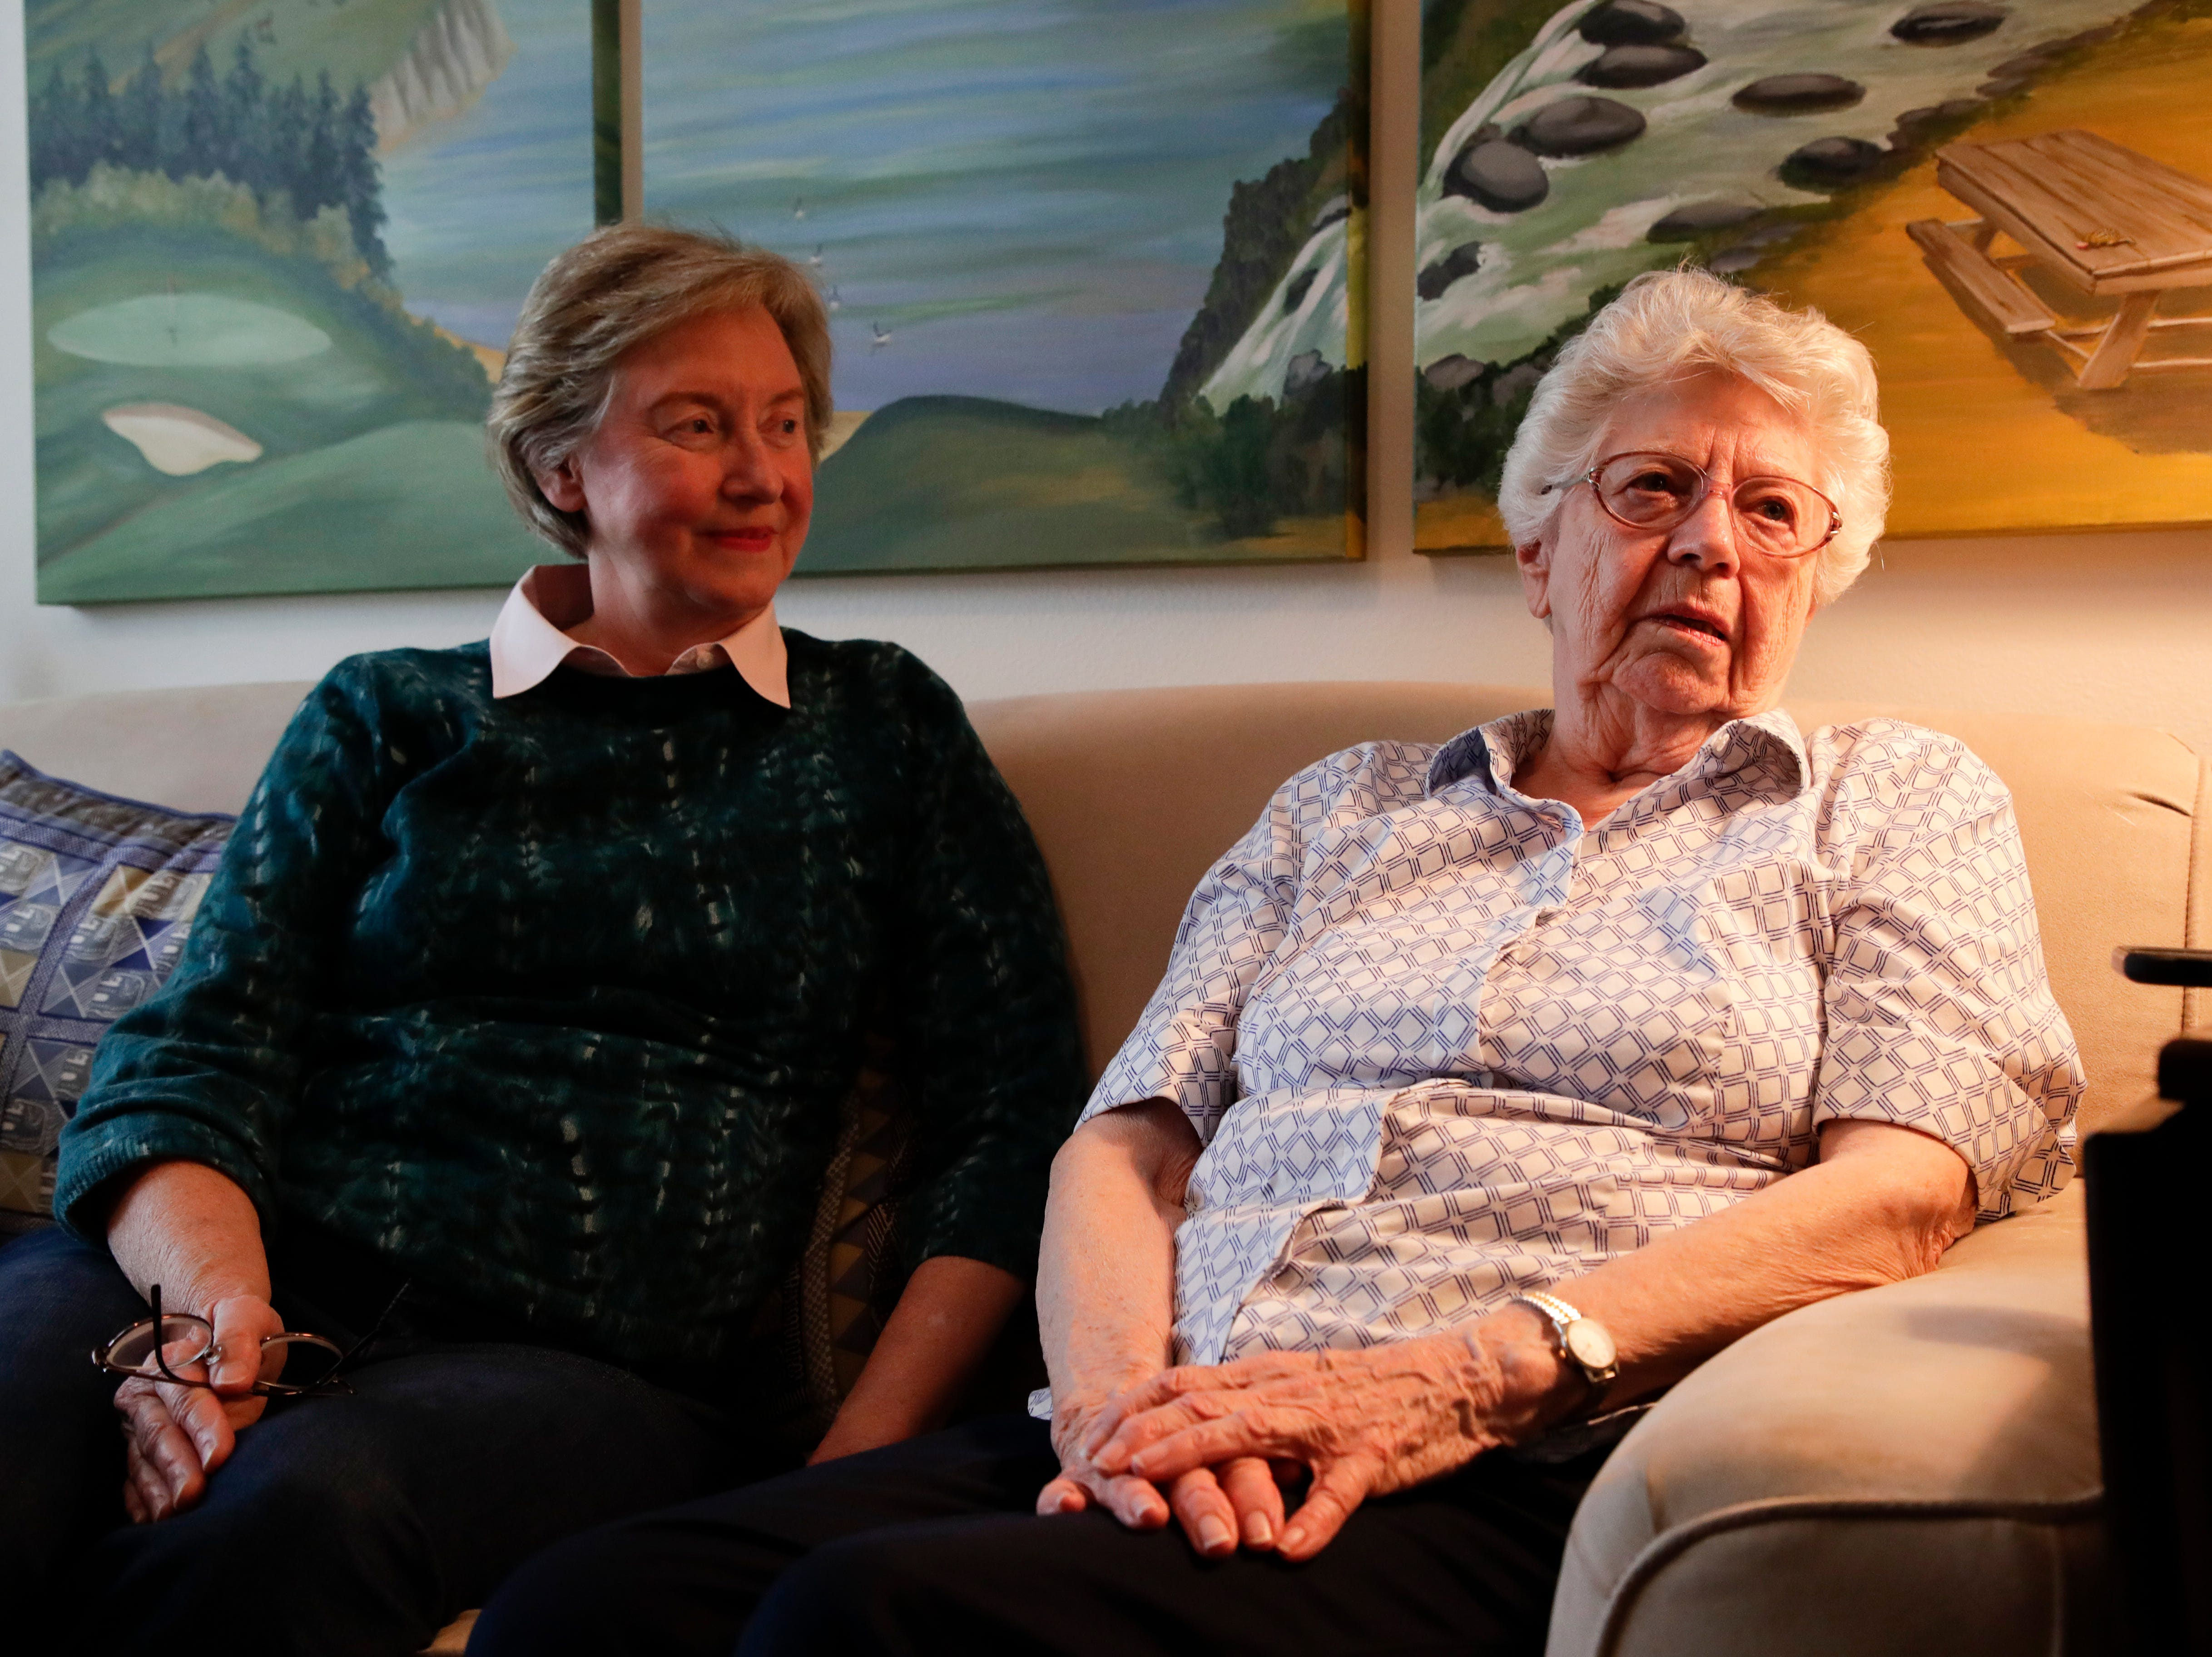 Emily Golz, right, 92, and her daughter Sandy DeLopez sit in the living room of Golz's apartment talking about Golz's brother Earl Baum who died at Pearl Harbor Dec. 7, 1941. Baum's remains were identified last year through DNA. He will be buried March 8, 2019 at Tallahassee National Cemetery.